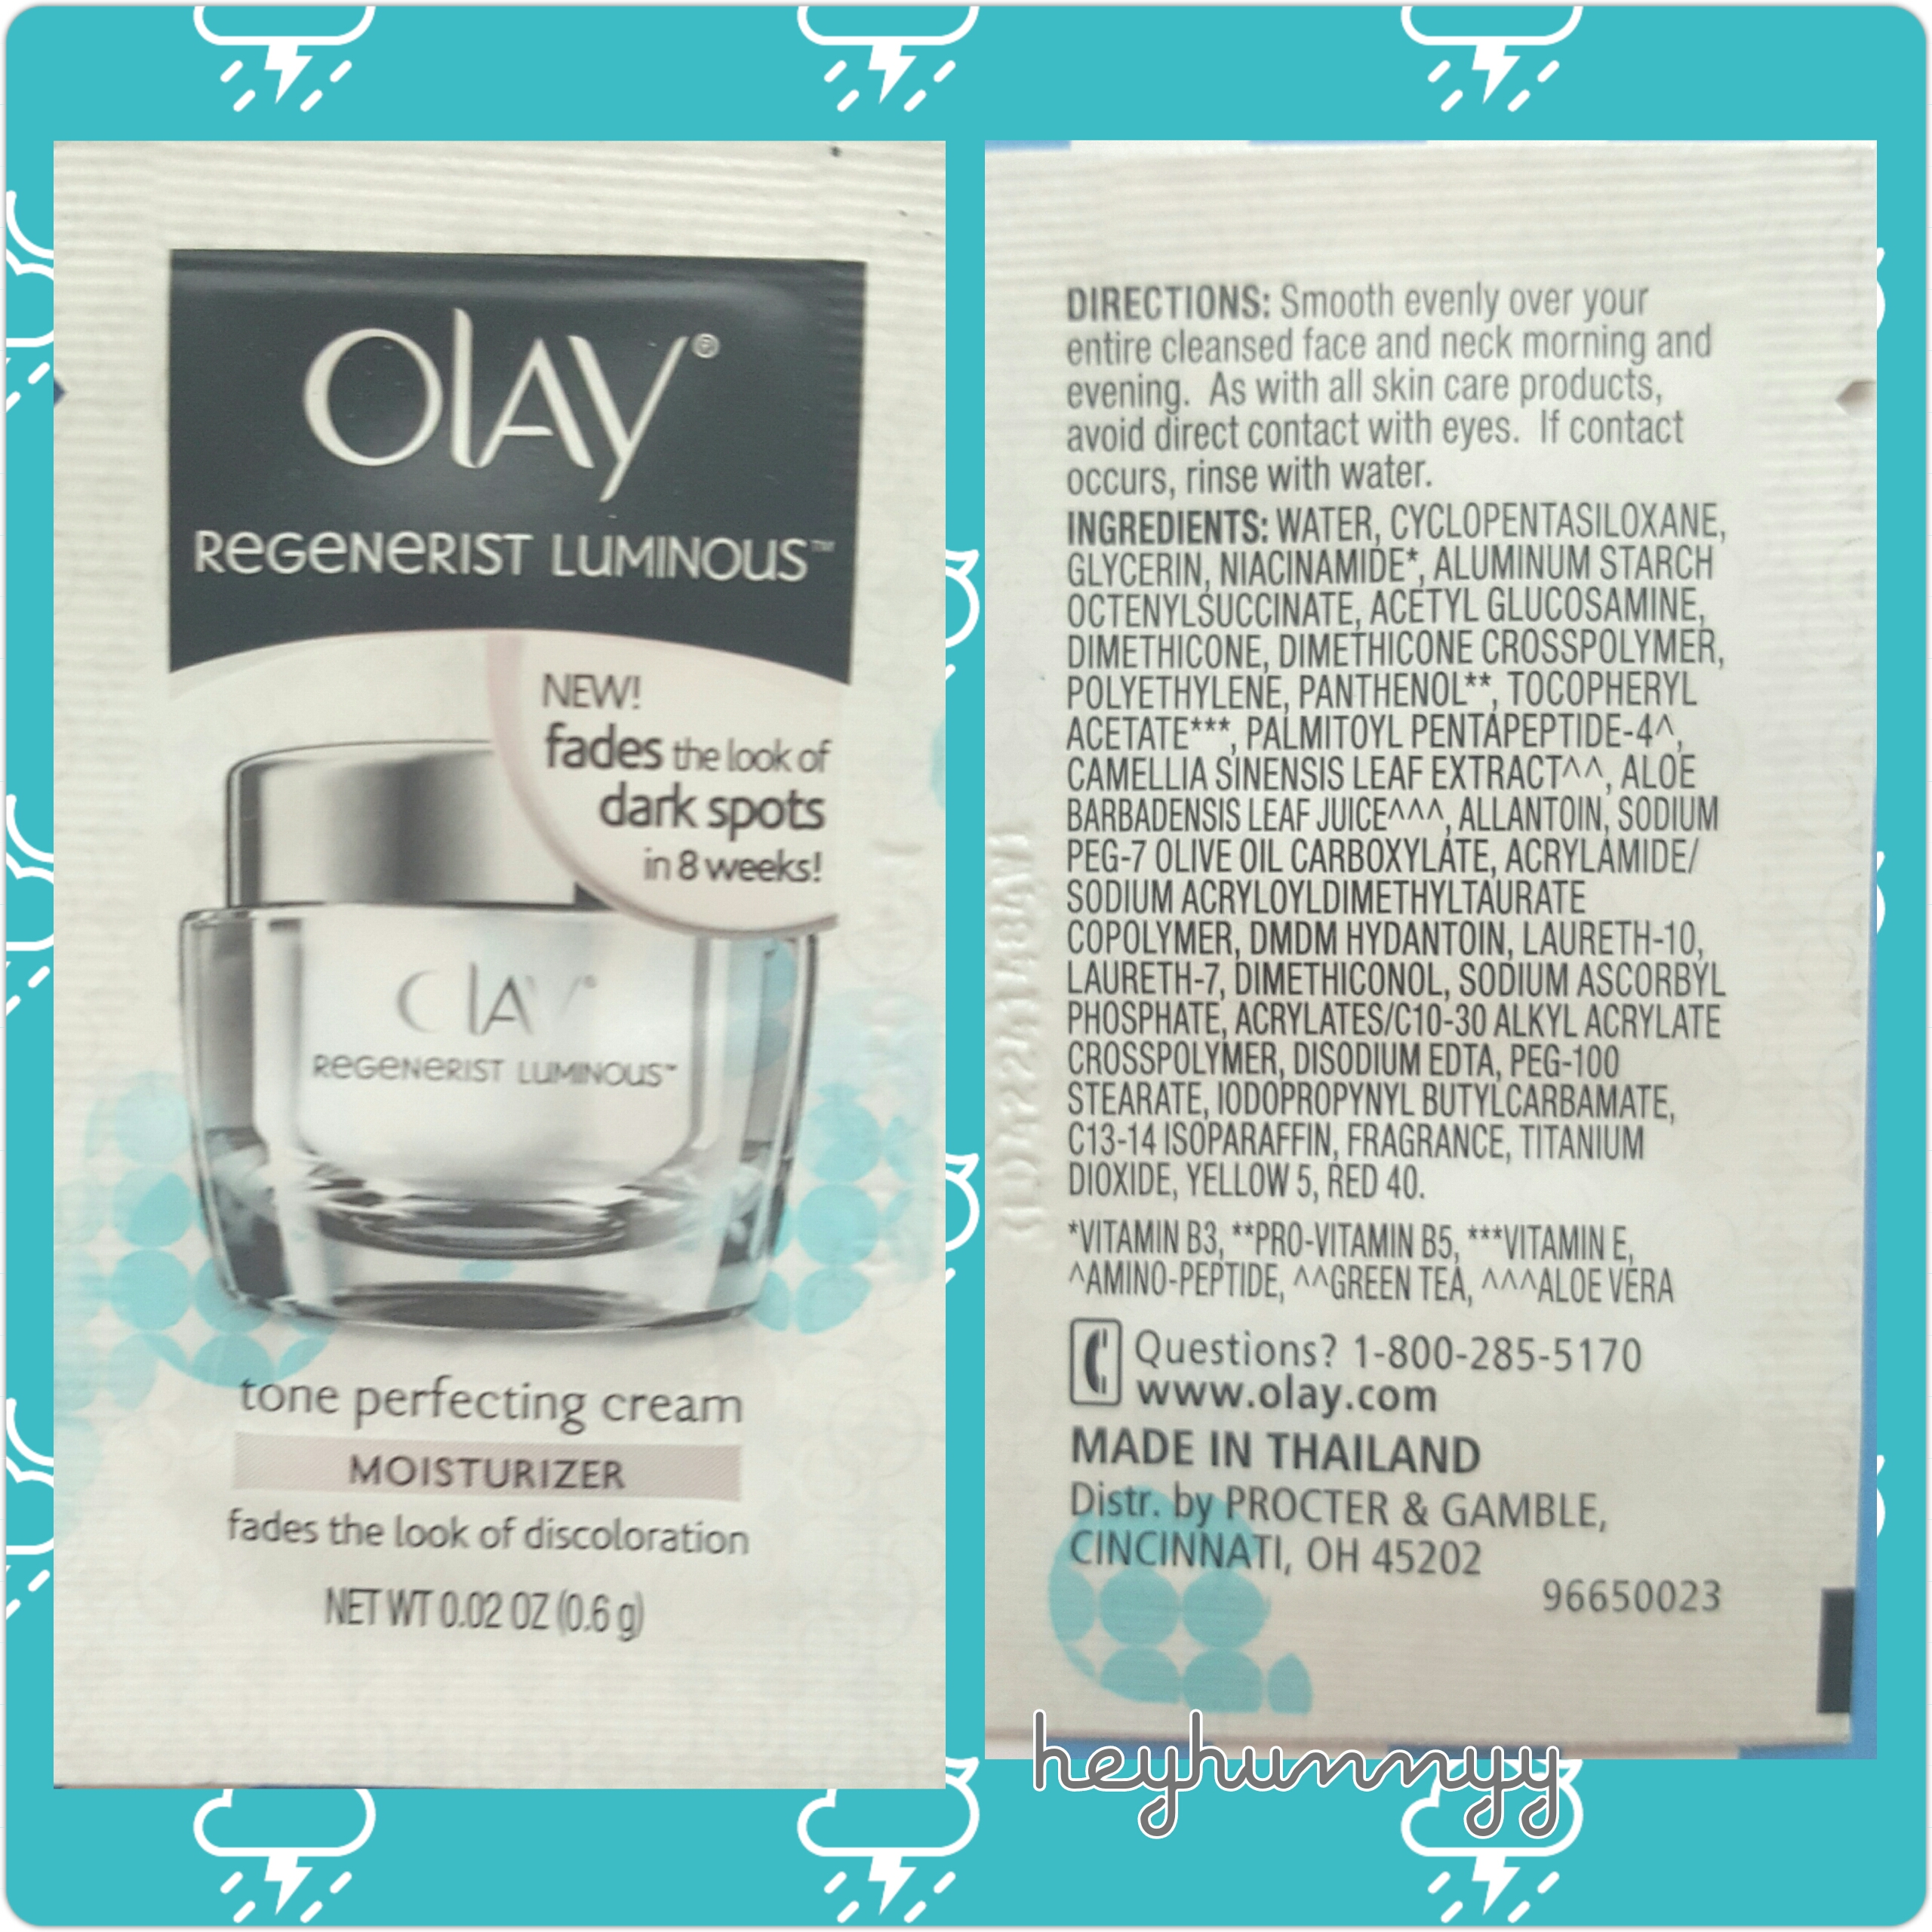 ::REVIEW:: Olay – Tone Perfecting Cream!